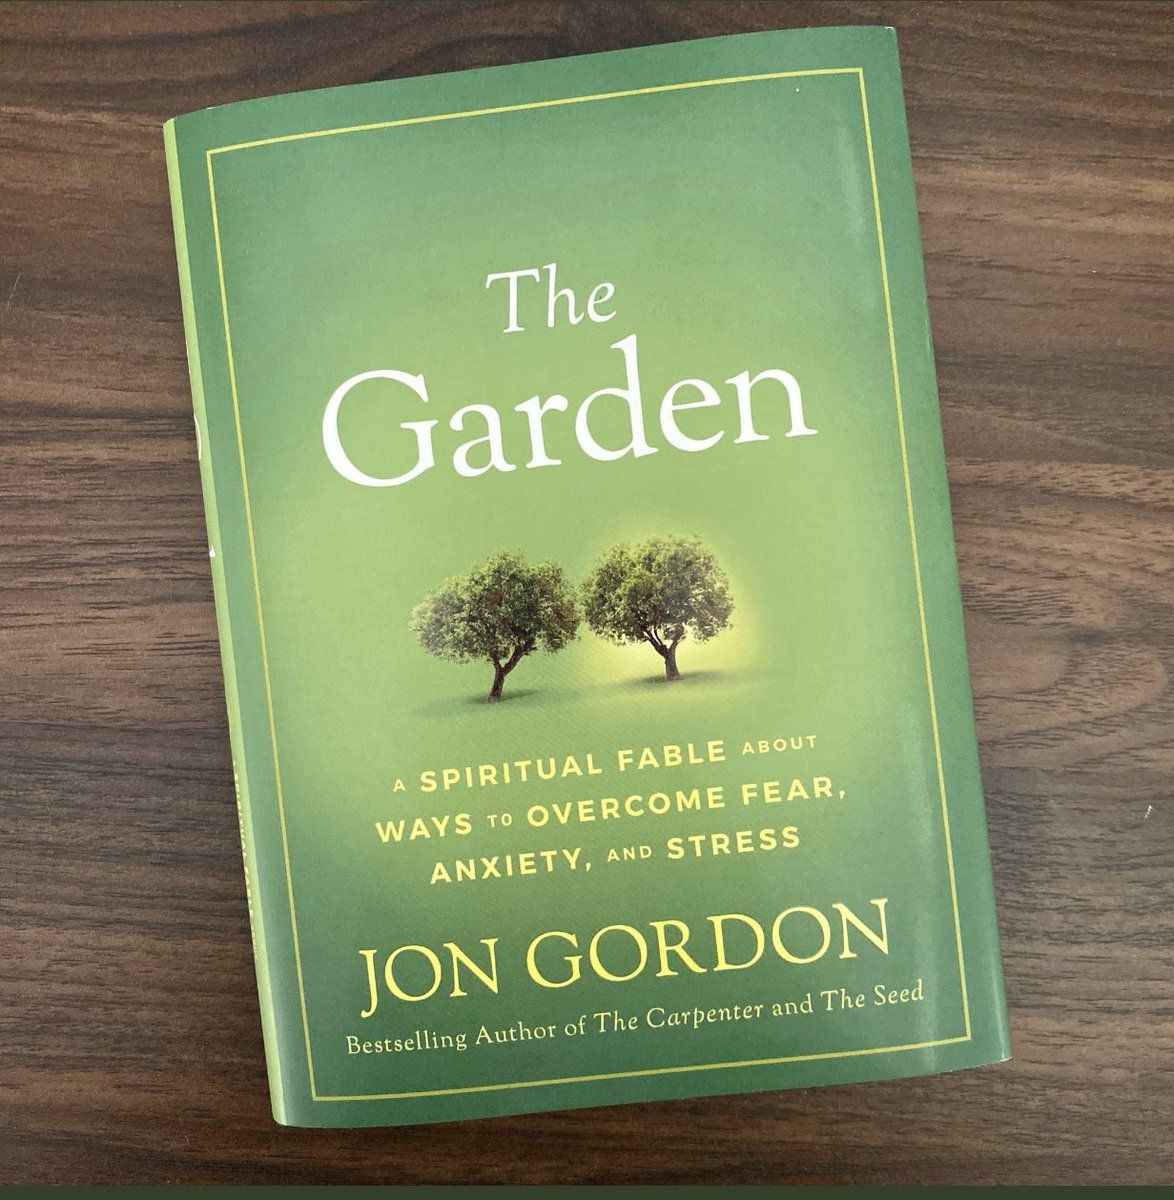 Thank you, @JonGordon11 for our team reading, The Garden!! So pertinent right now! #BucUp #LeadersAreReaders pic.twitter.com/v8C1ngfQKr